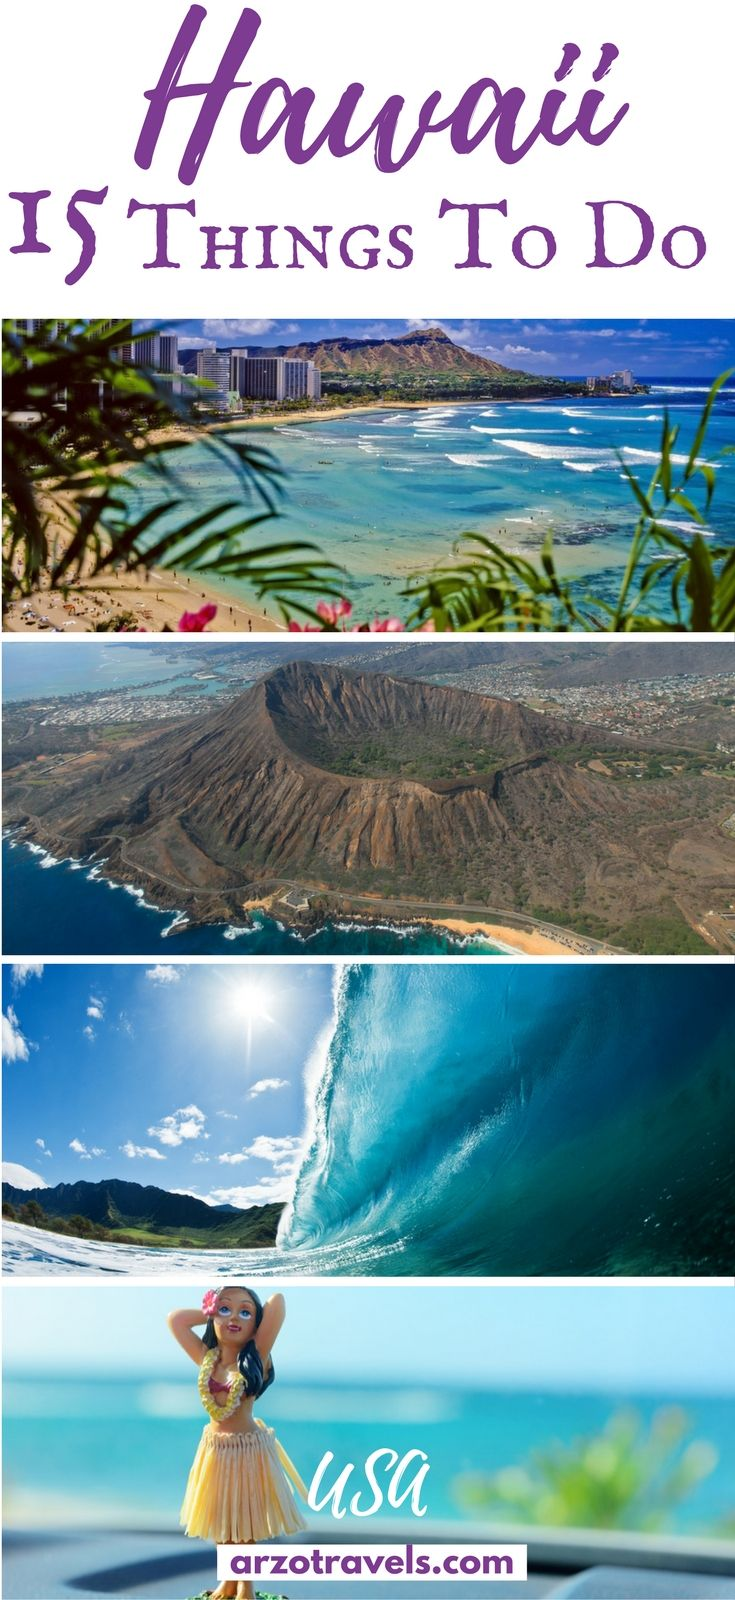 Best things to do and see in Hawaii, USA and a pre-travel guide for the different islands. Best places to see.